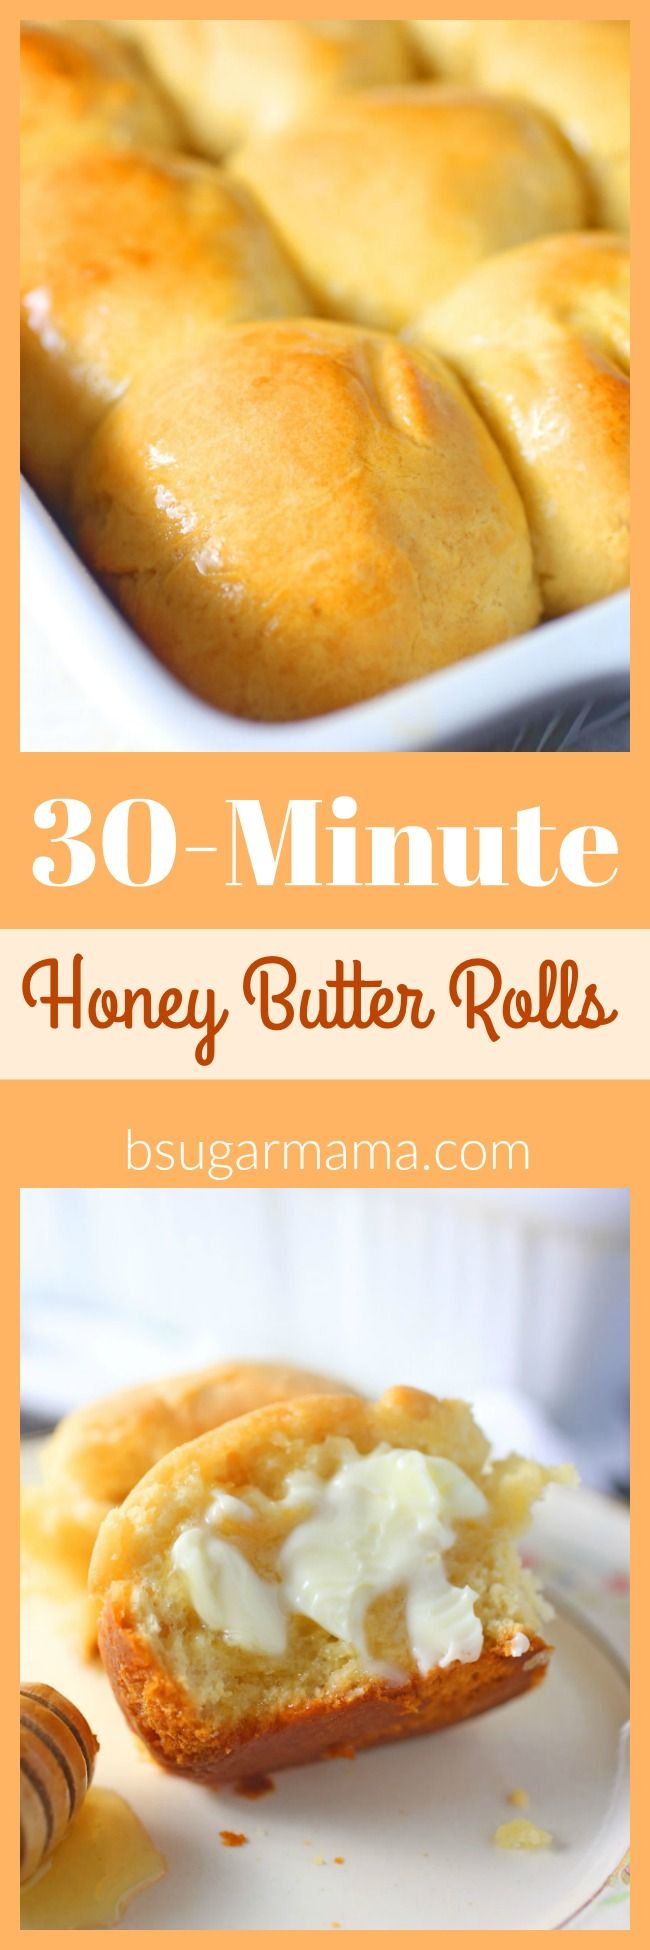 These 30-Minute Honey Butter Rolls are made from scratch. You will want to make these dinner rolls with every big meal.